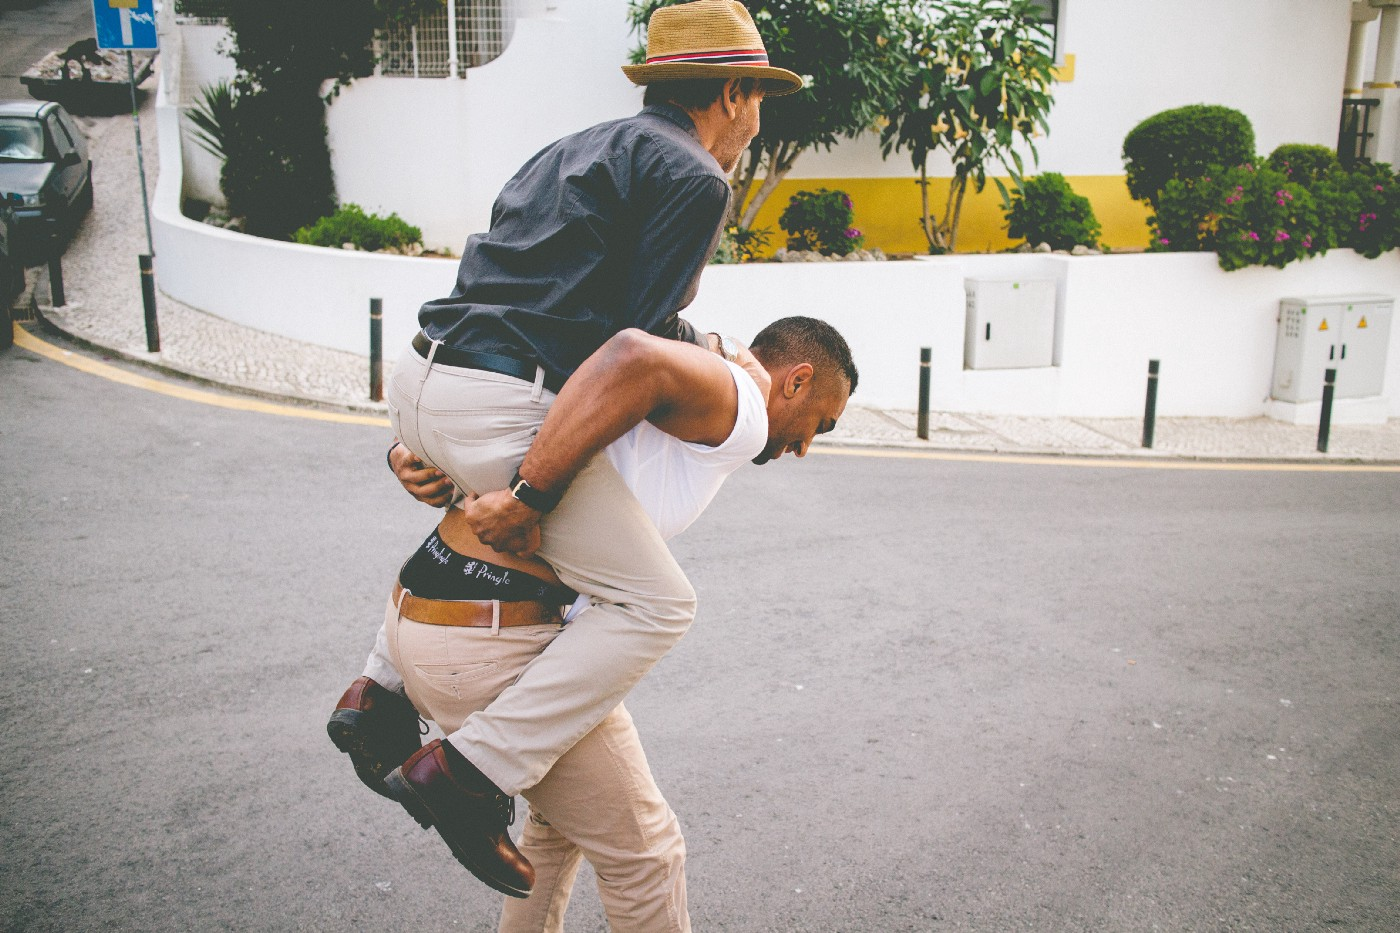 I'm giving my Dad a piggy-back